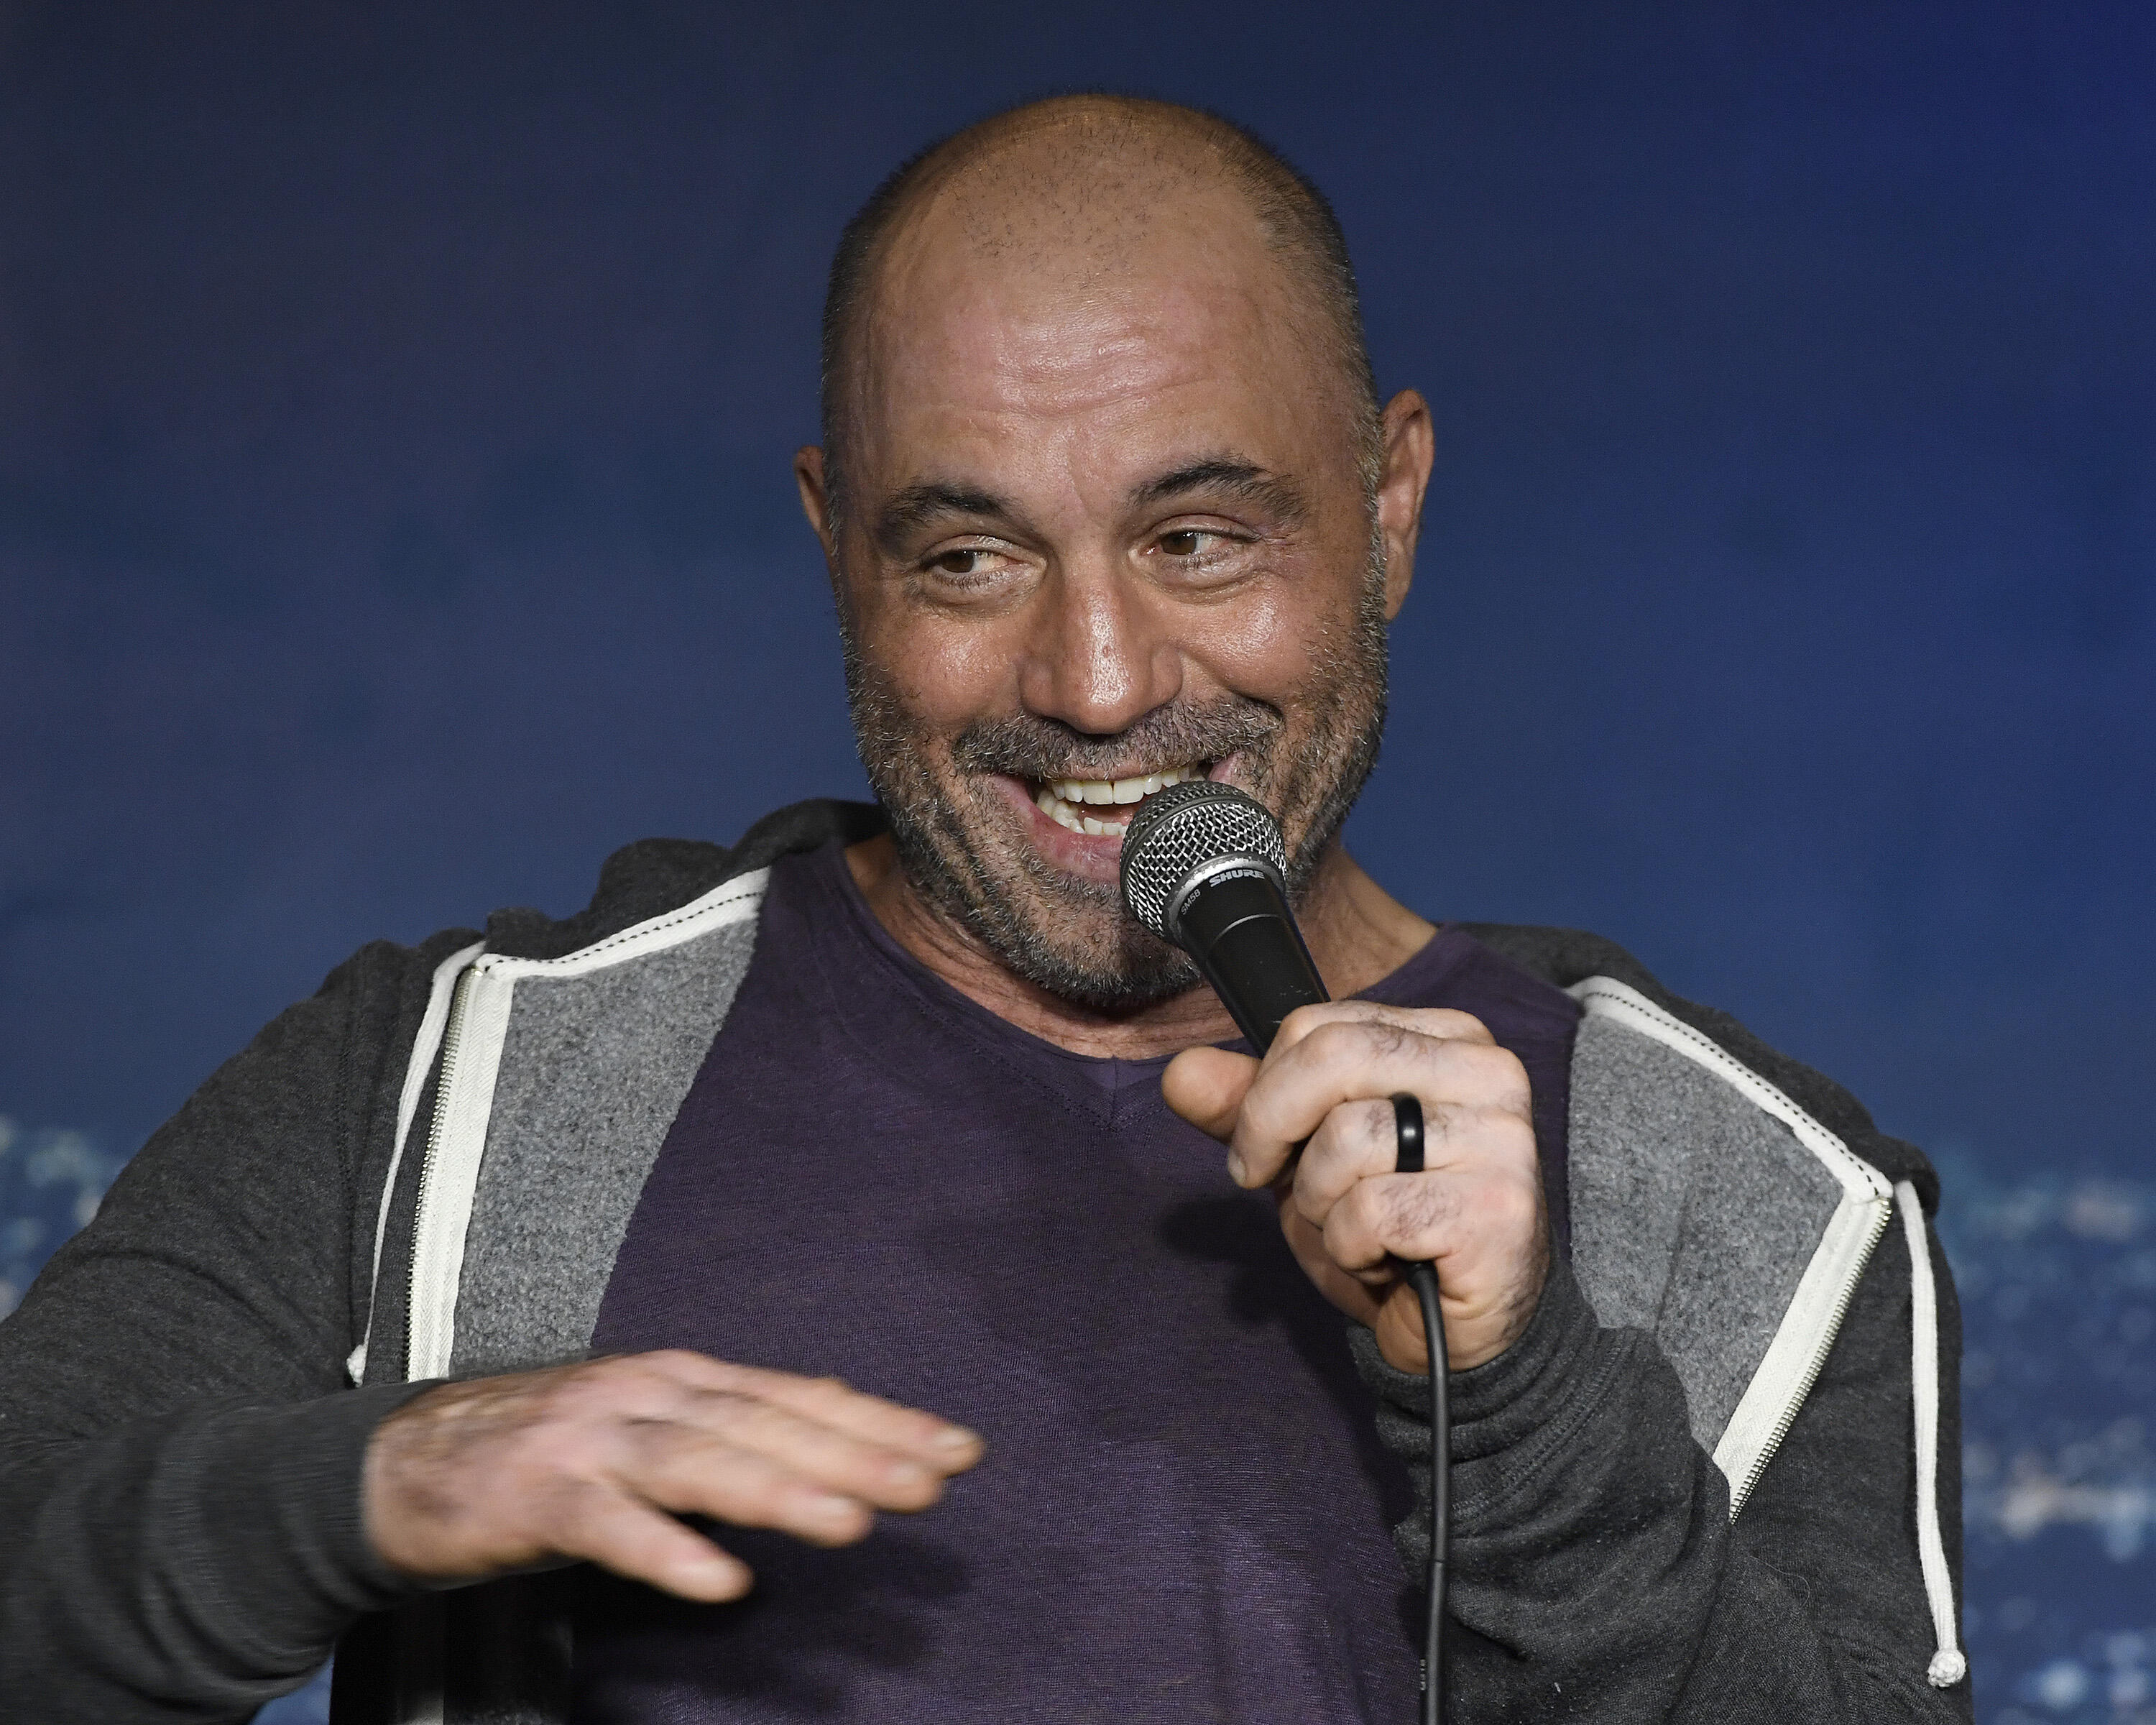 joe-rogan-gettyimages-1166802146